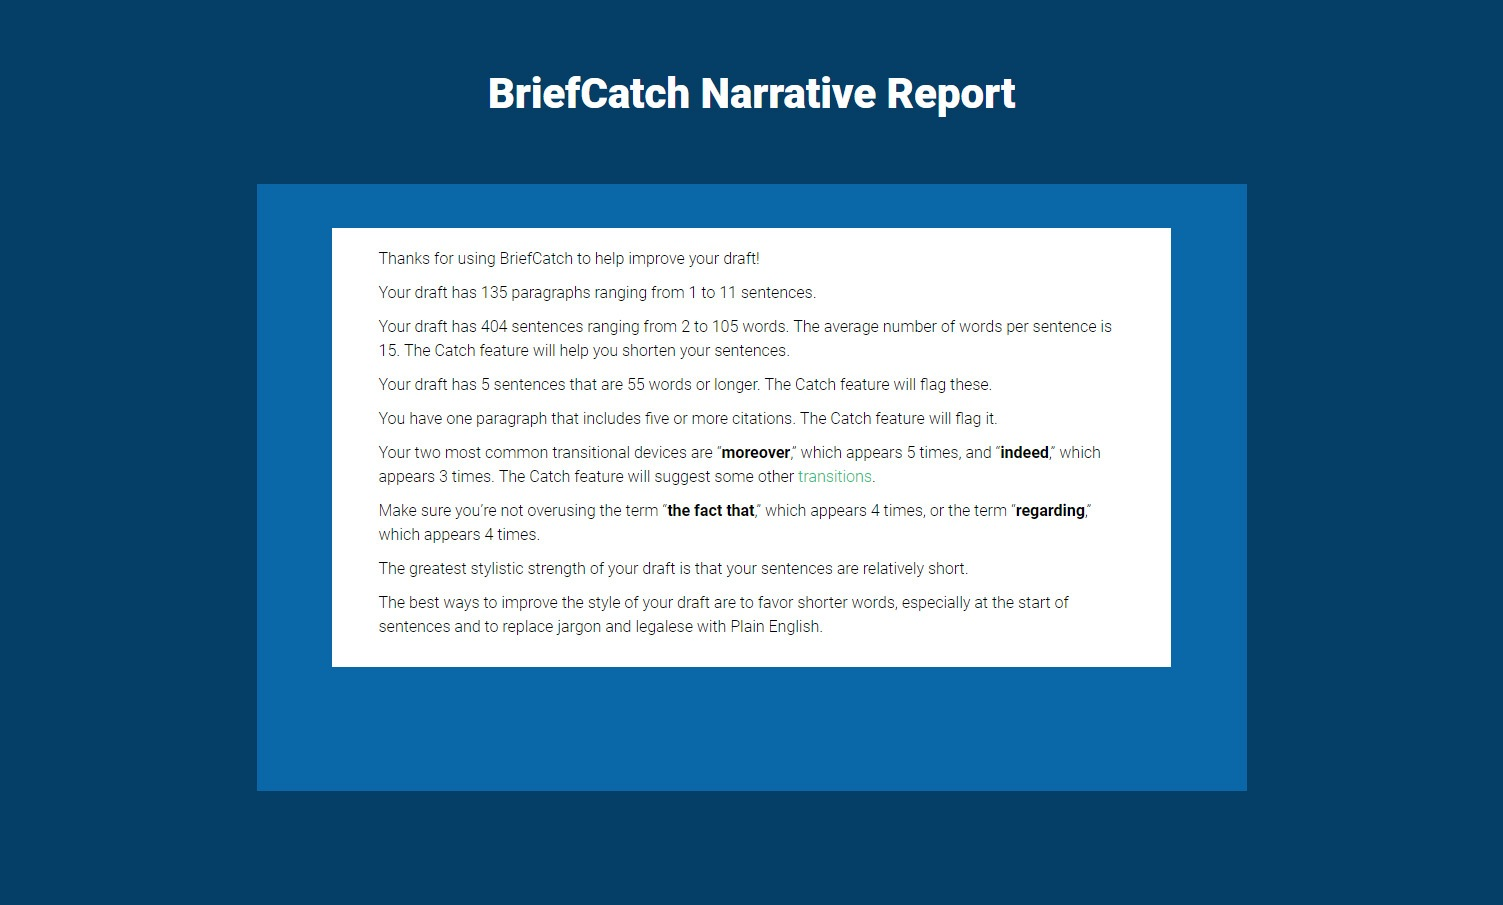 BriefCatch Preview: Narrative Report